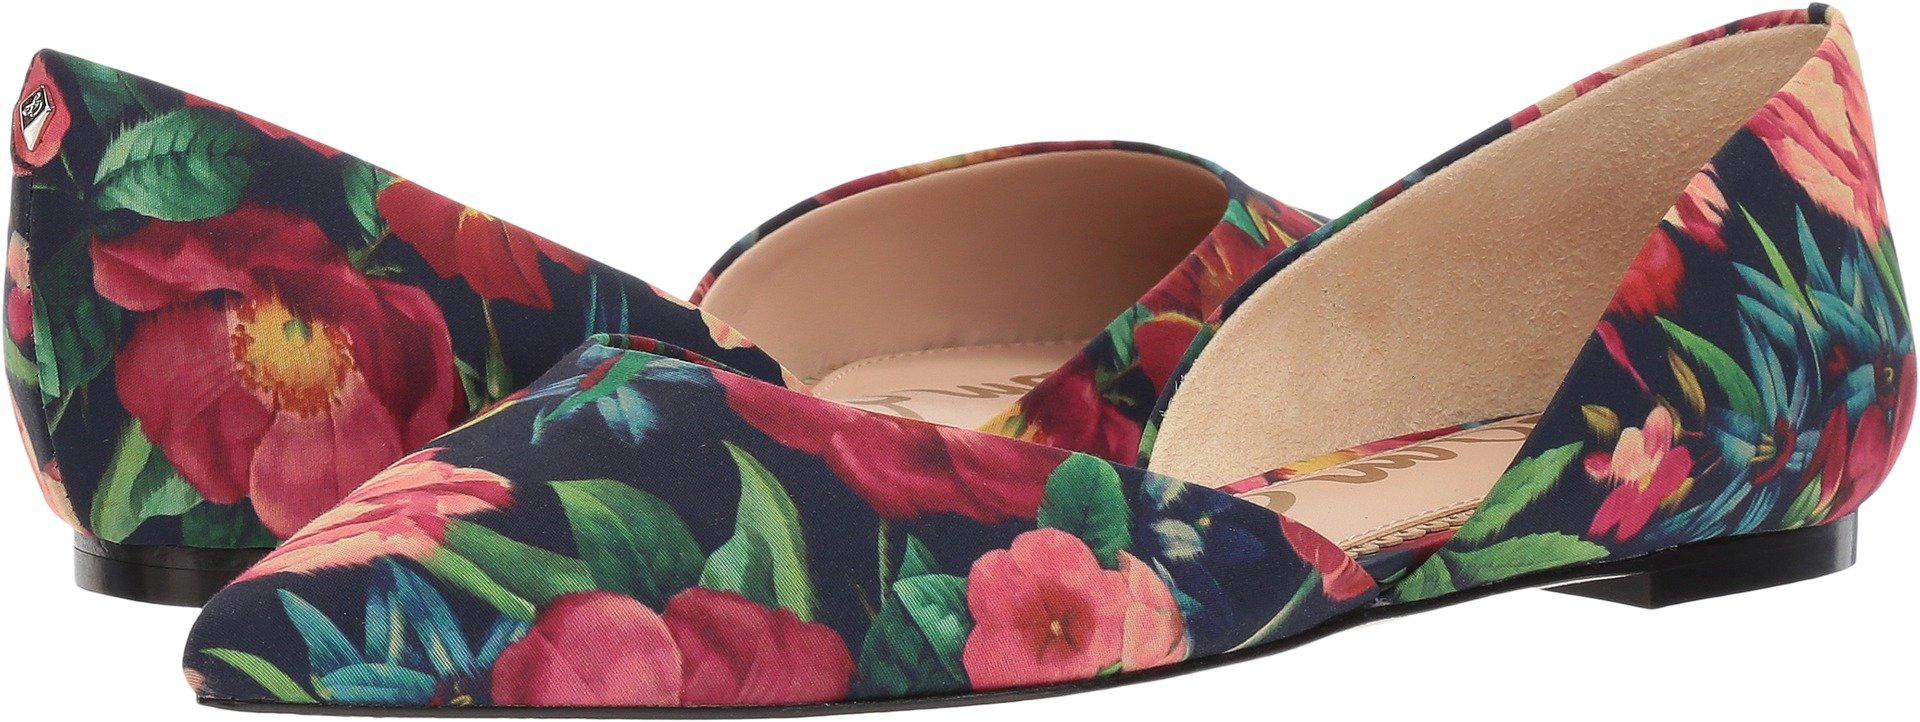 Sam Edelman Women's Rodney Ballet Flat, Navy Multi Bouquet Print, 8.5 Medium US